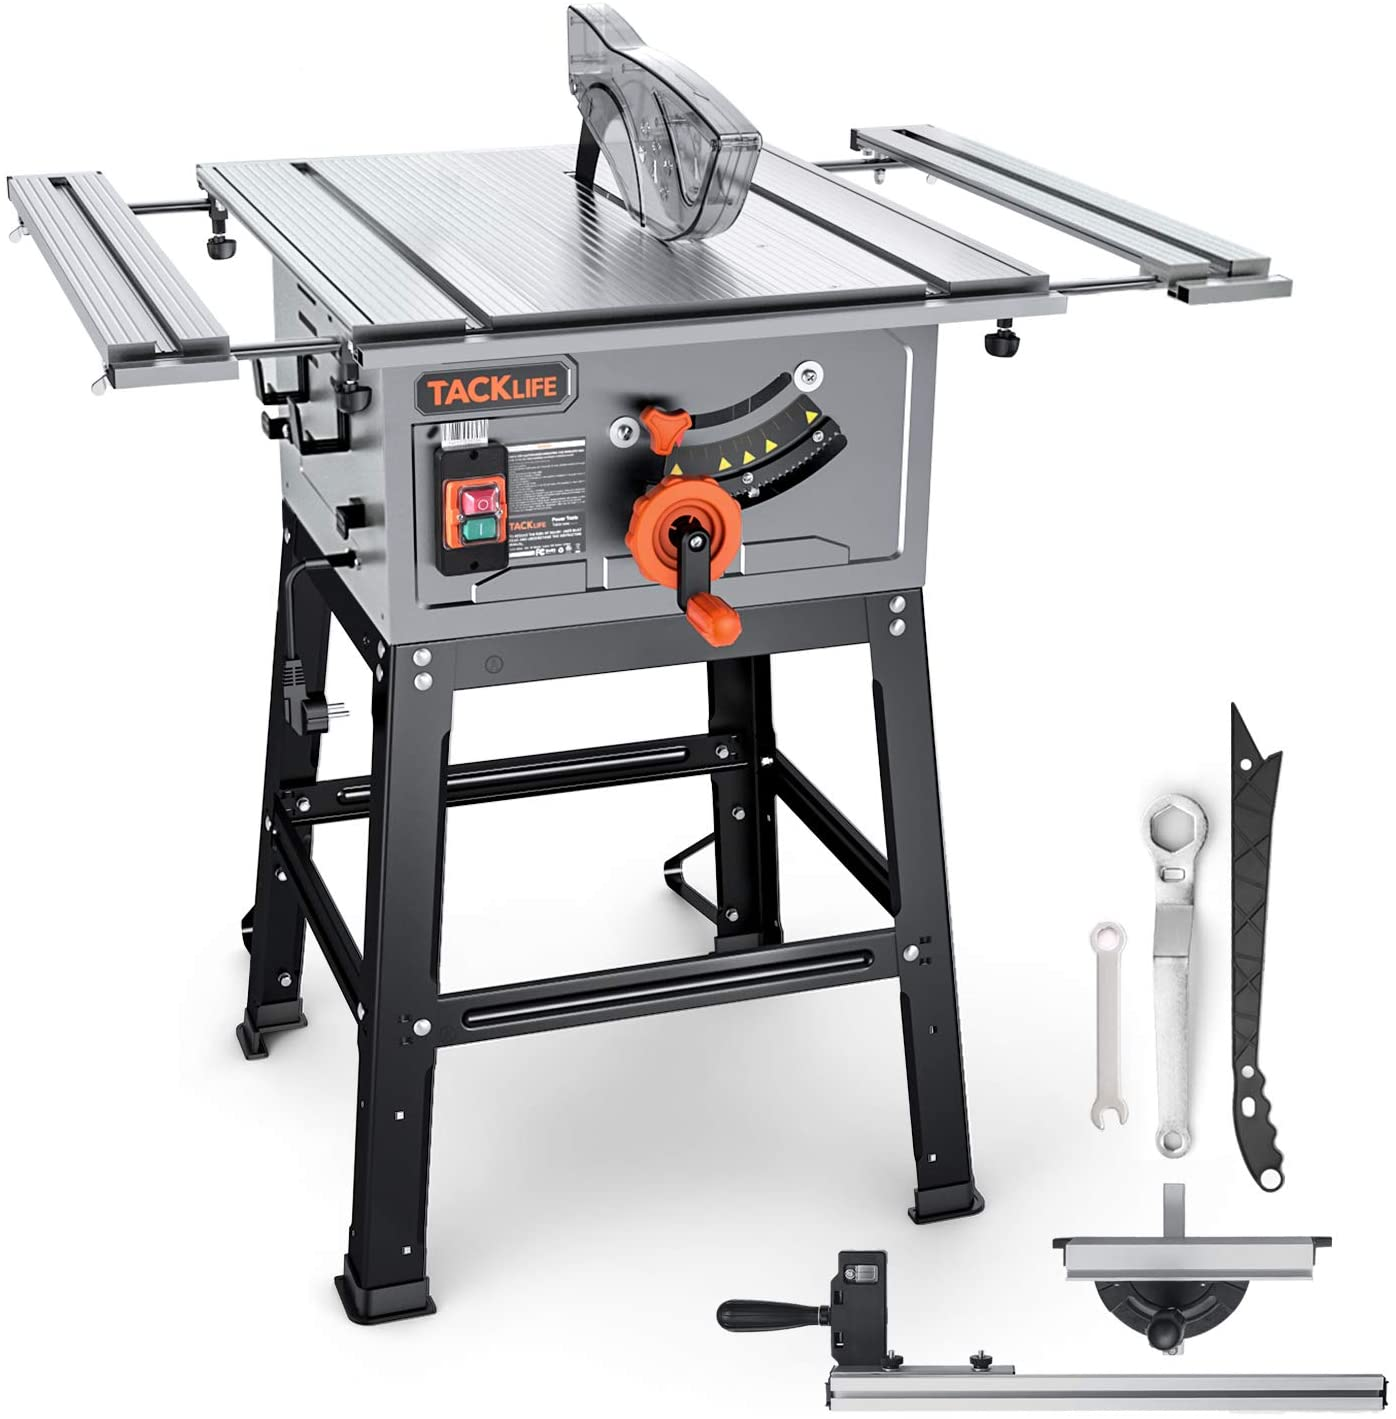 What are Best Table Saws?